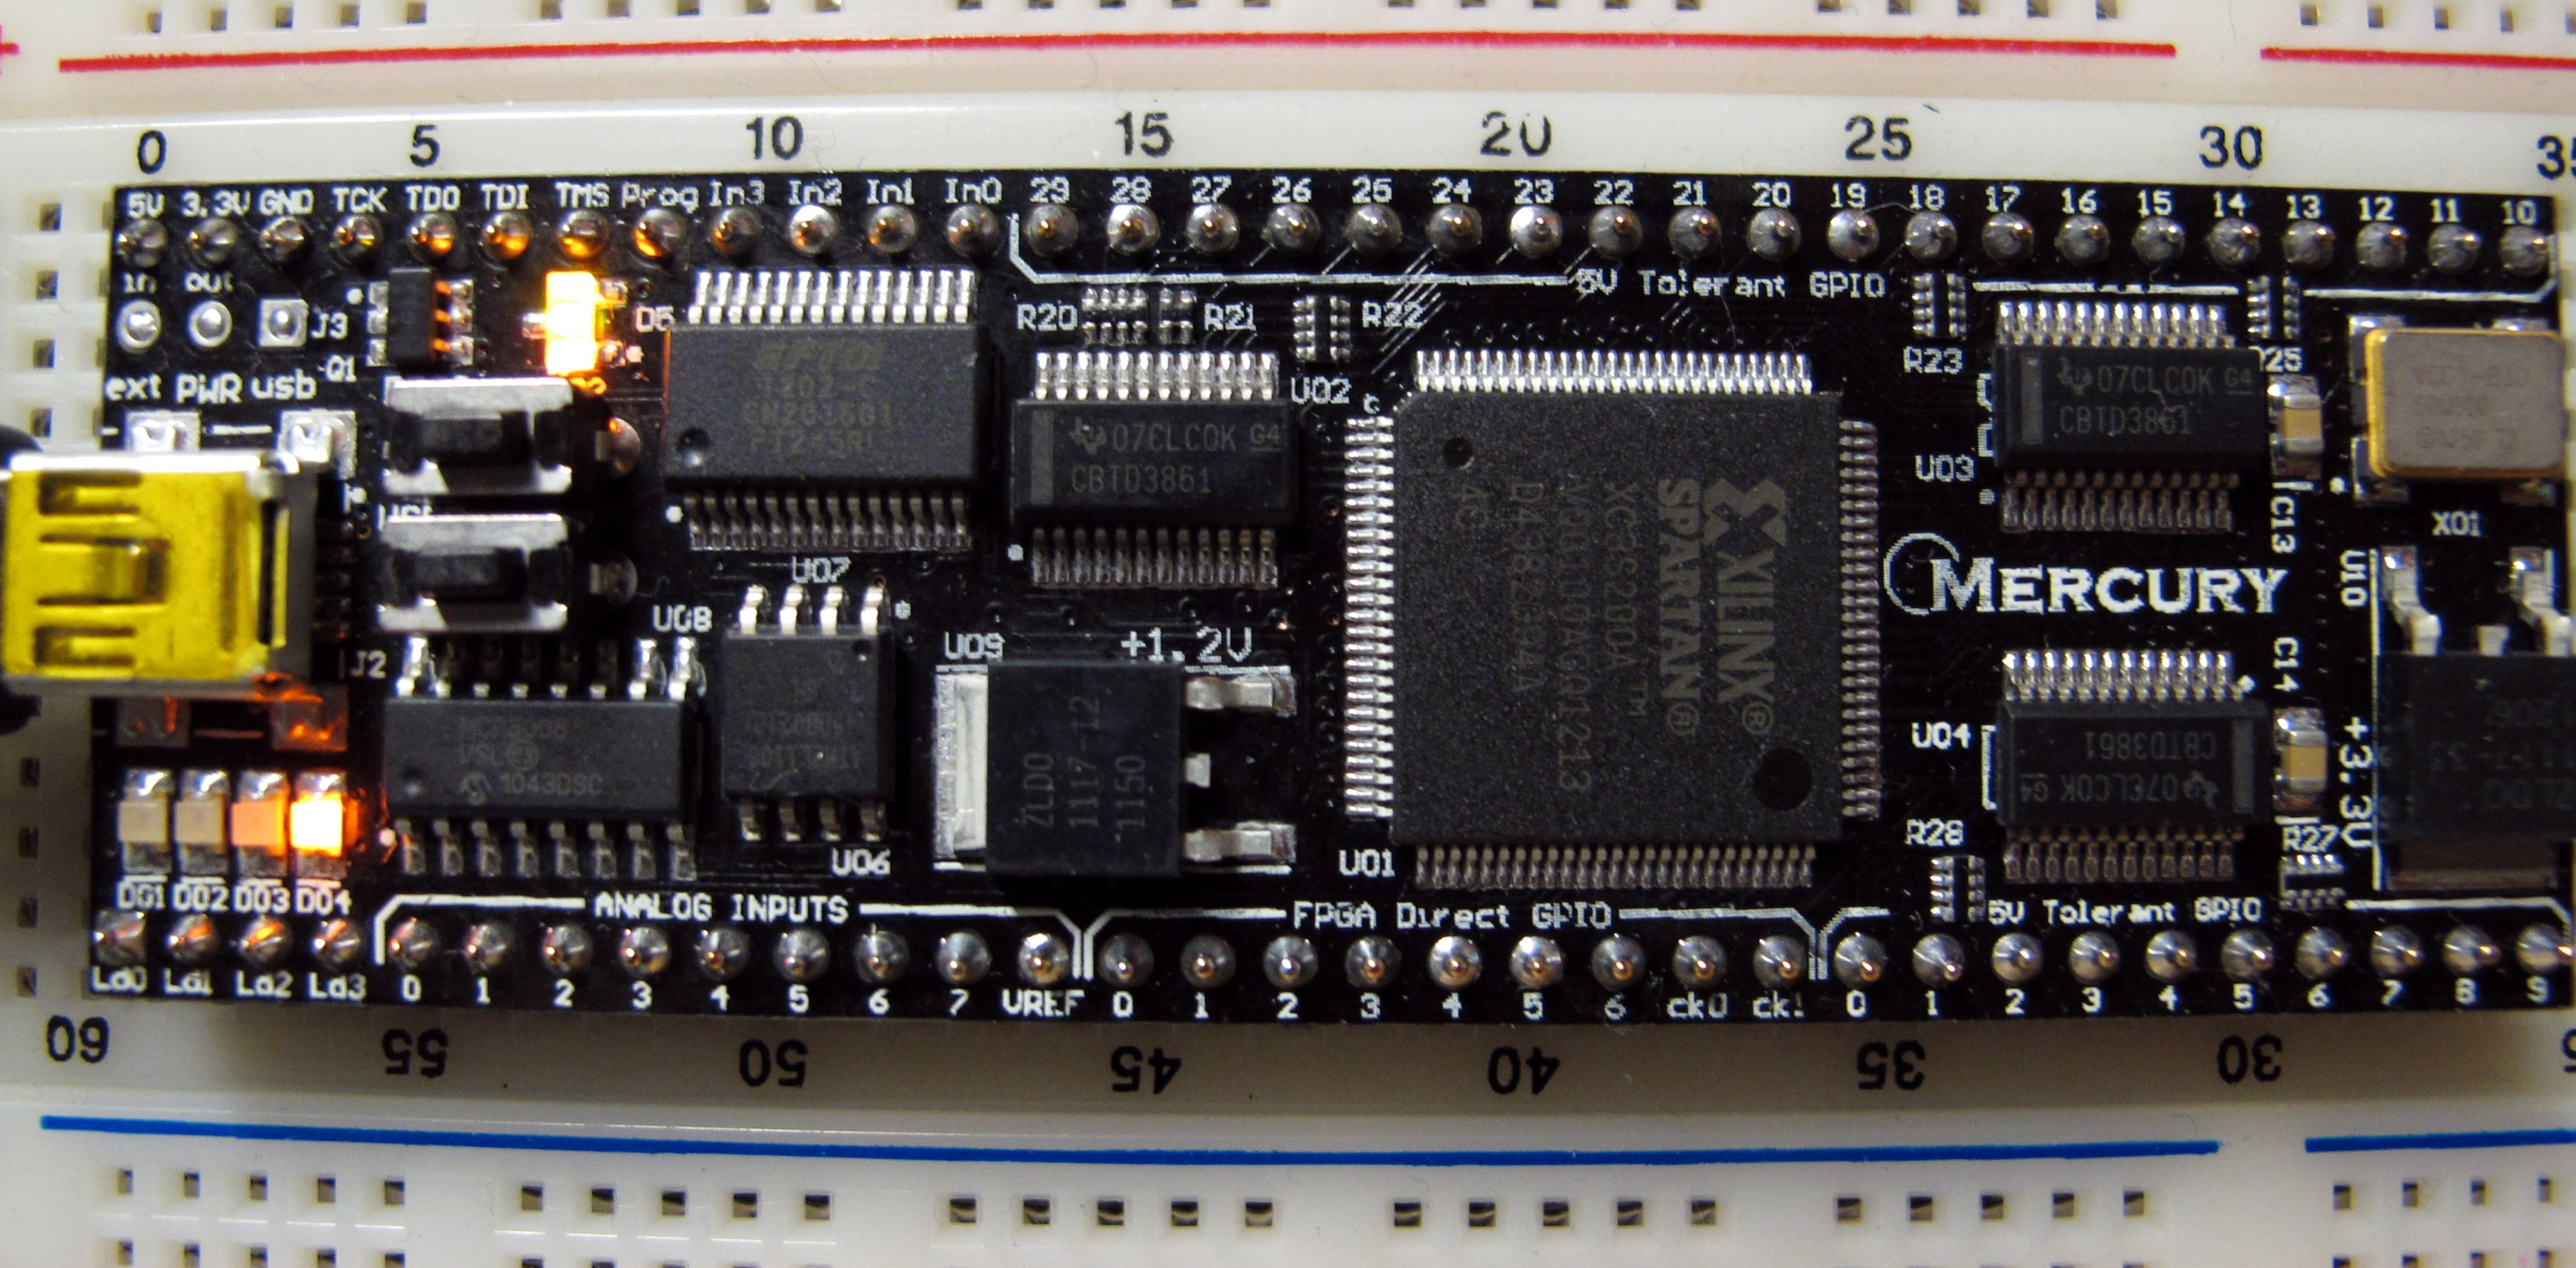 The Mercury FPGA unit from the side